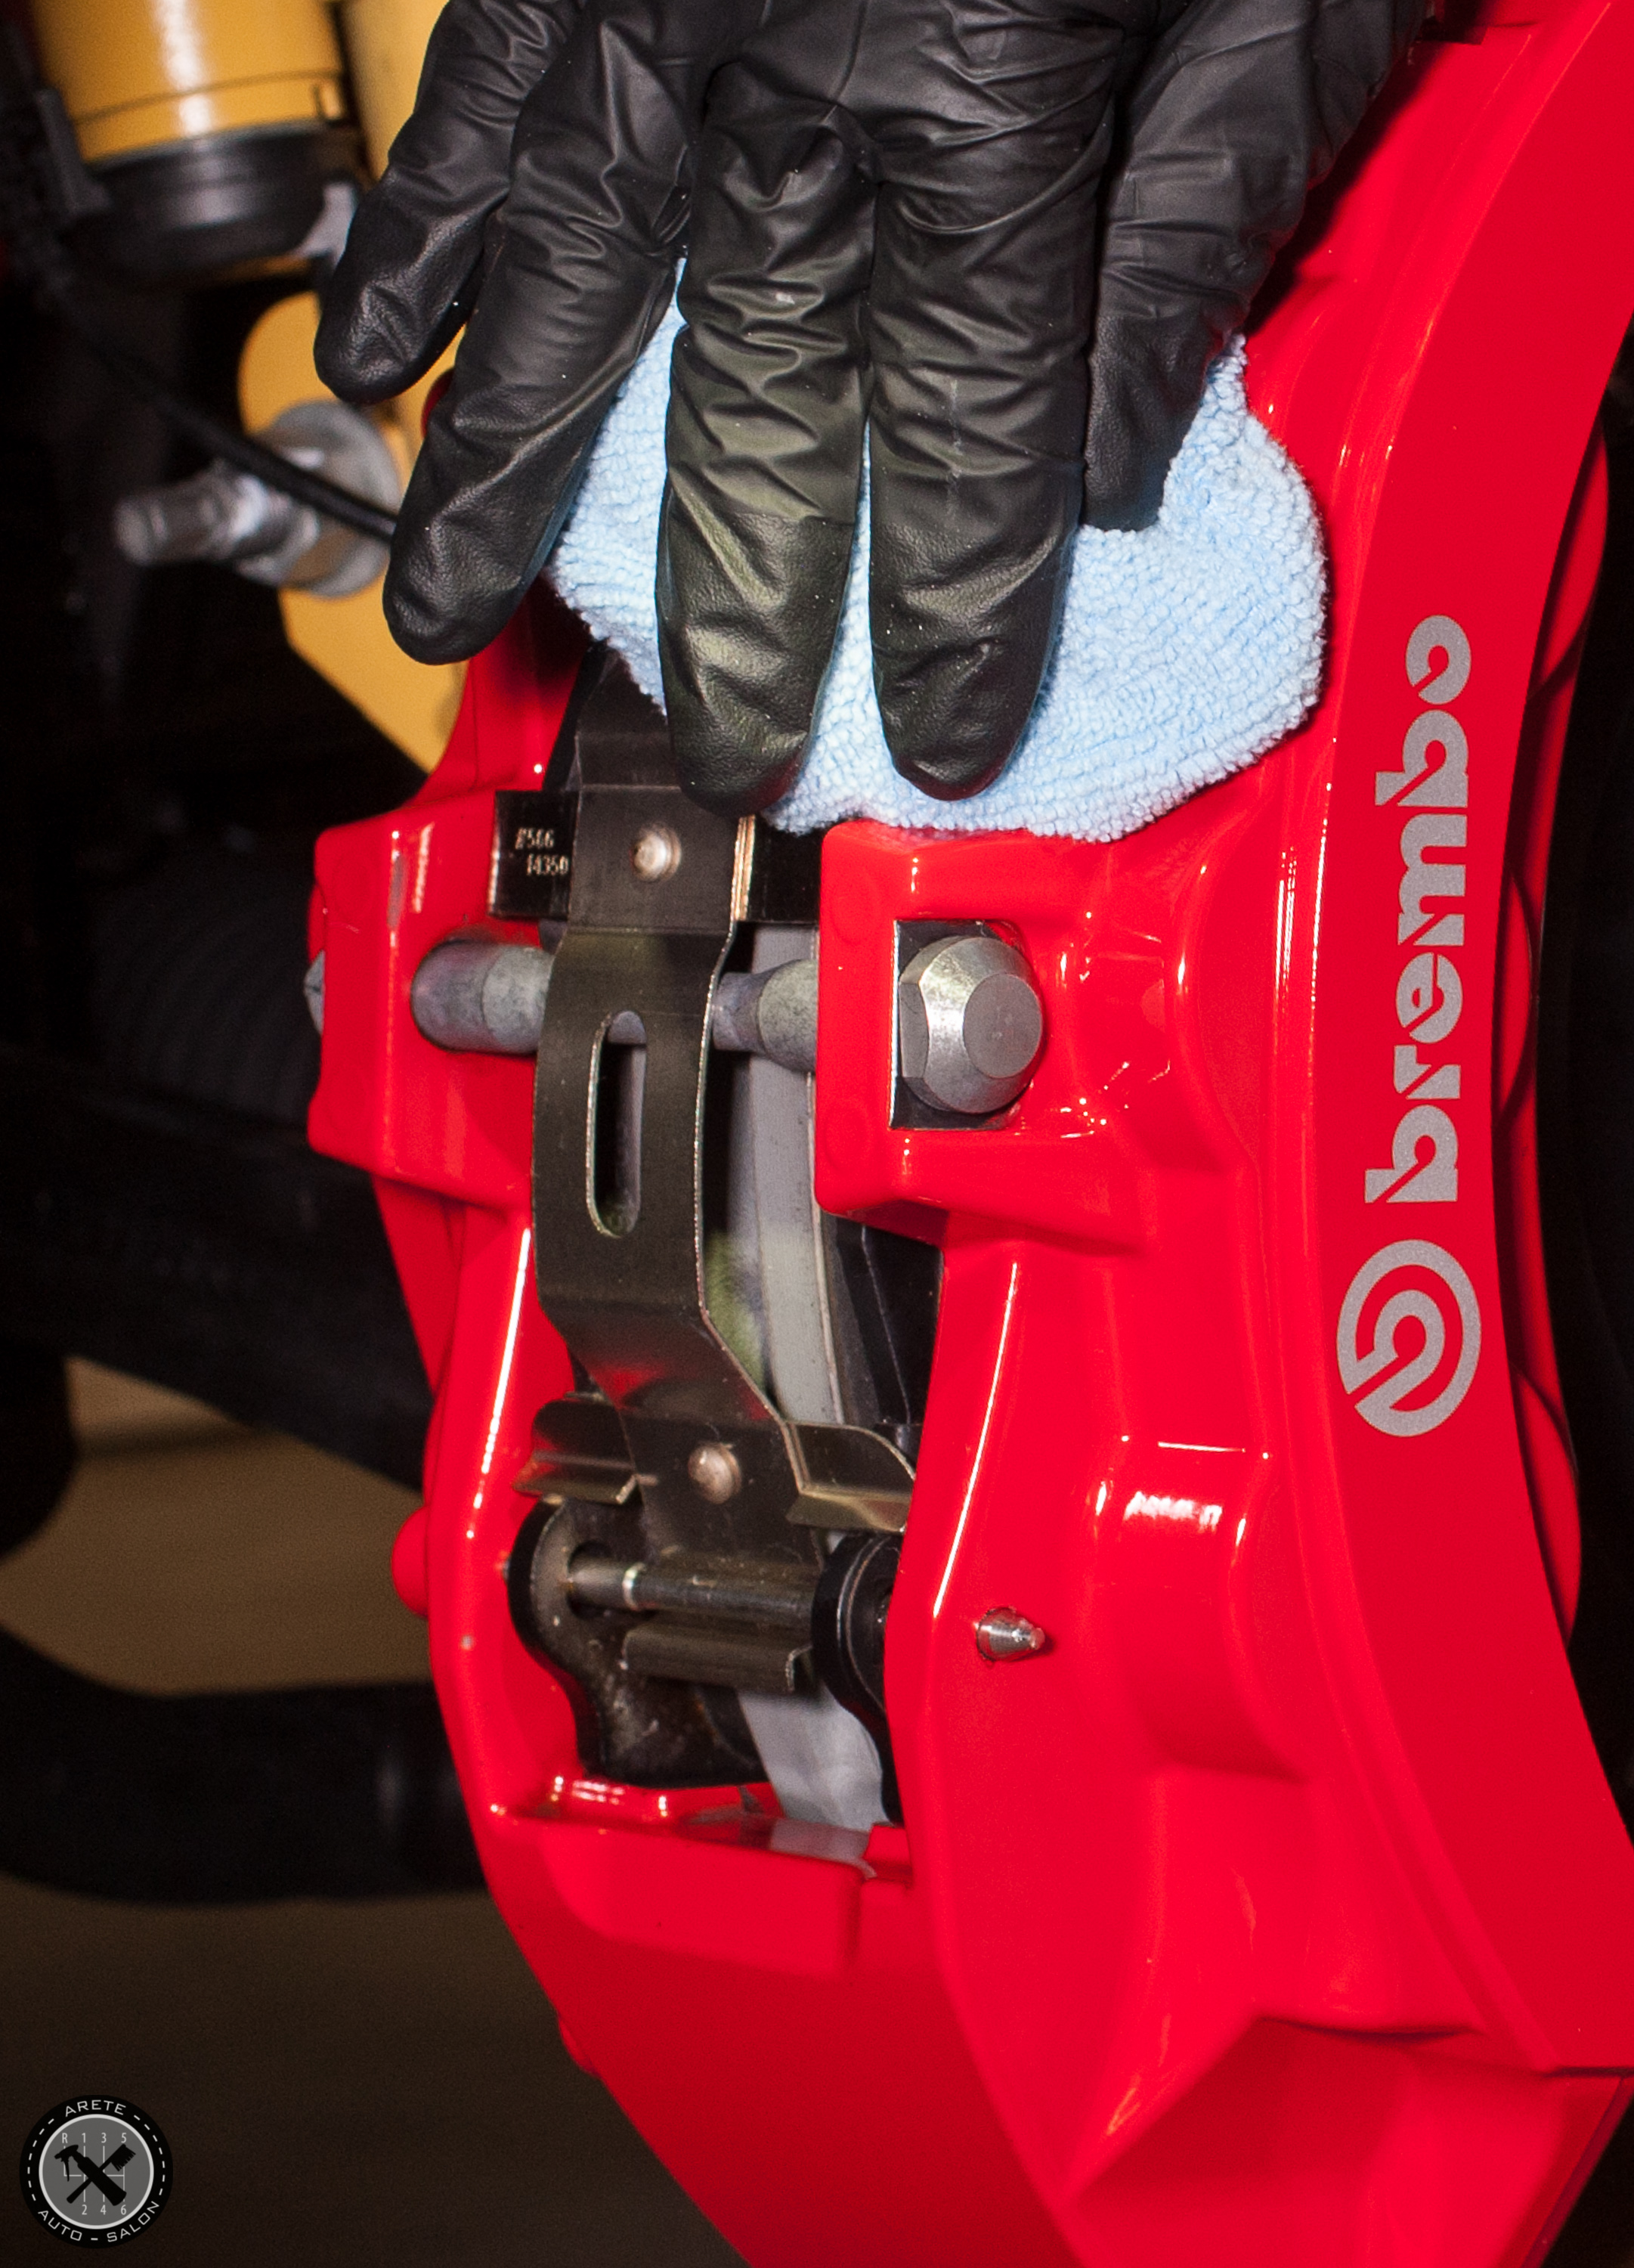 Action shot of the calipers being coated in CQuartz Finest.